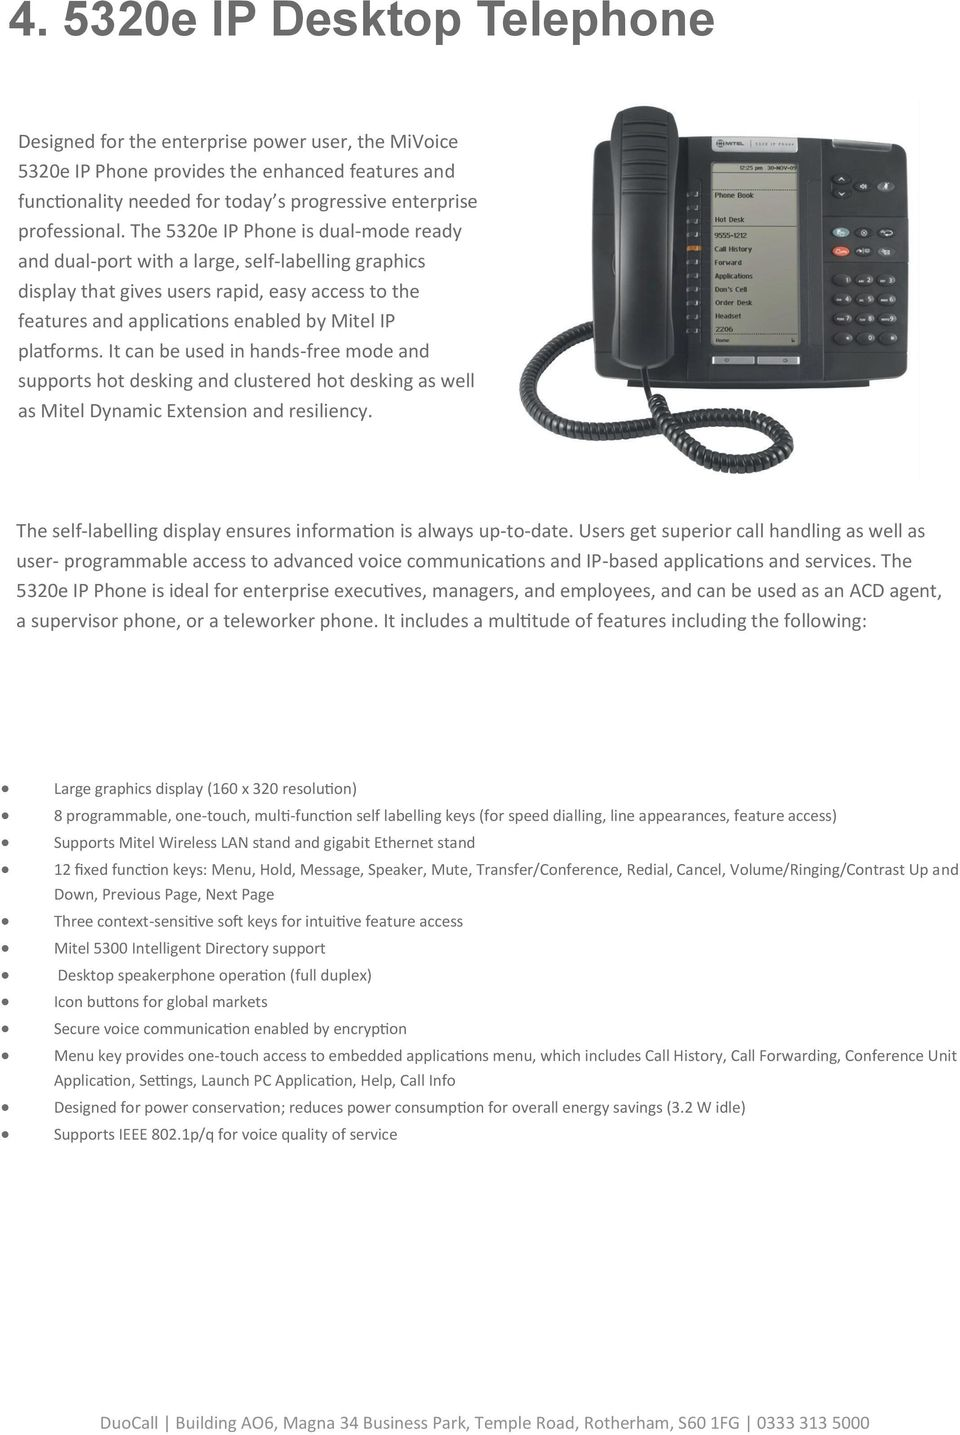 The 5320e IP Phone is dual-mode ready and dual-port with a large, self-labelling graphics display that gives users rapid, easy access to the features and applications enabled by Mitel IP platforms.